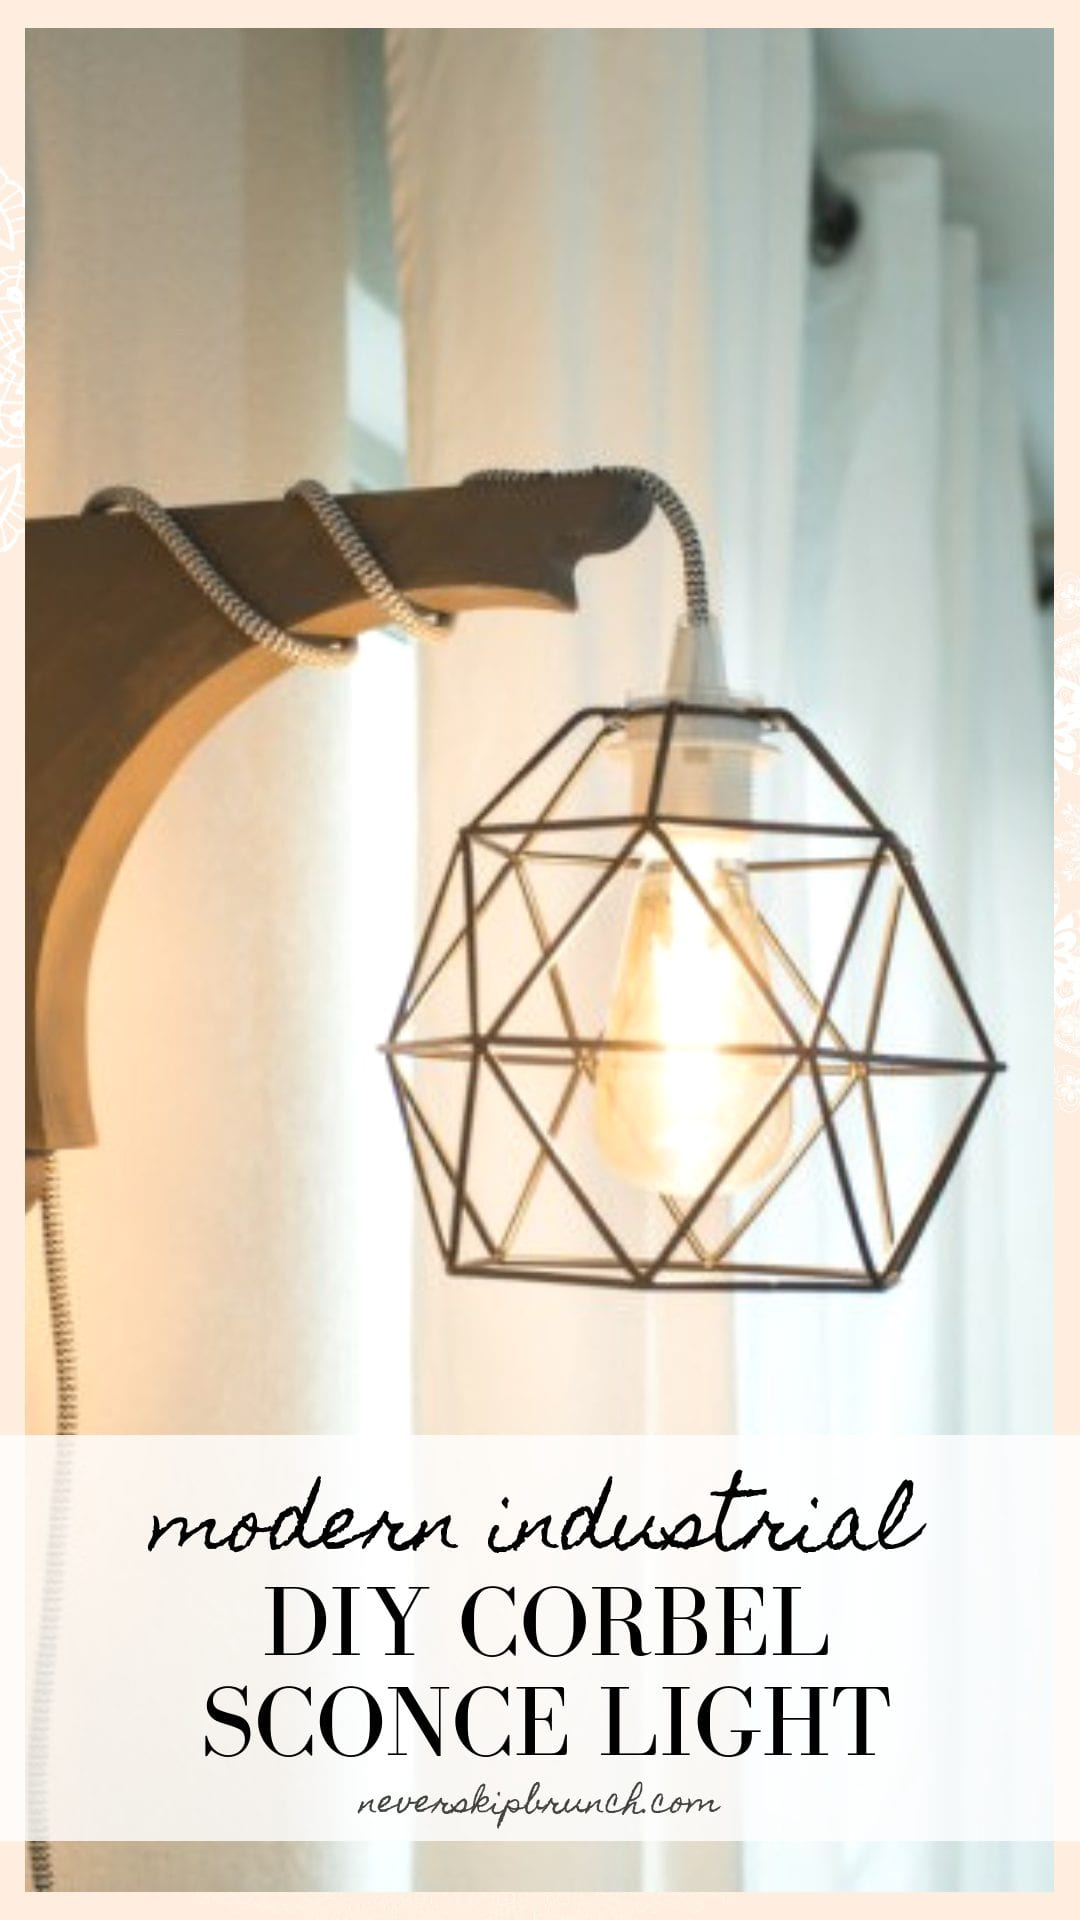 super easy corbel sconce light DIY | This diy corbel light does not require a drill. You can build this industrial diy corbel light sconce in under 30 minutes.| never skip brunch by cara newhart #decor #home #DIY